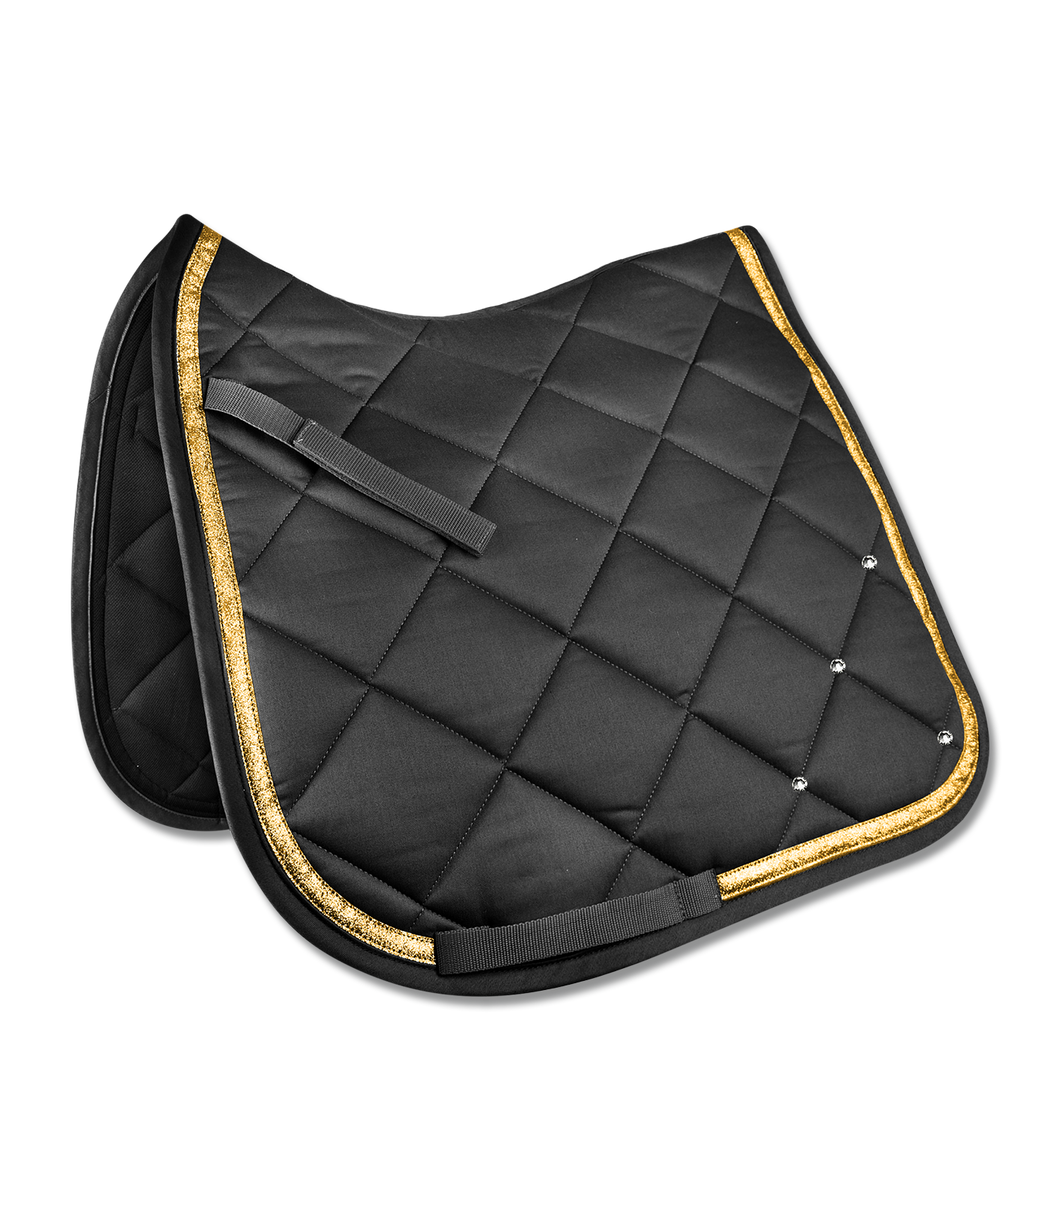 Black and gold saddle pad w